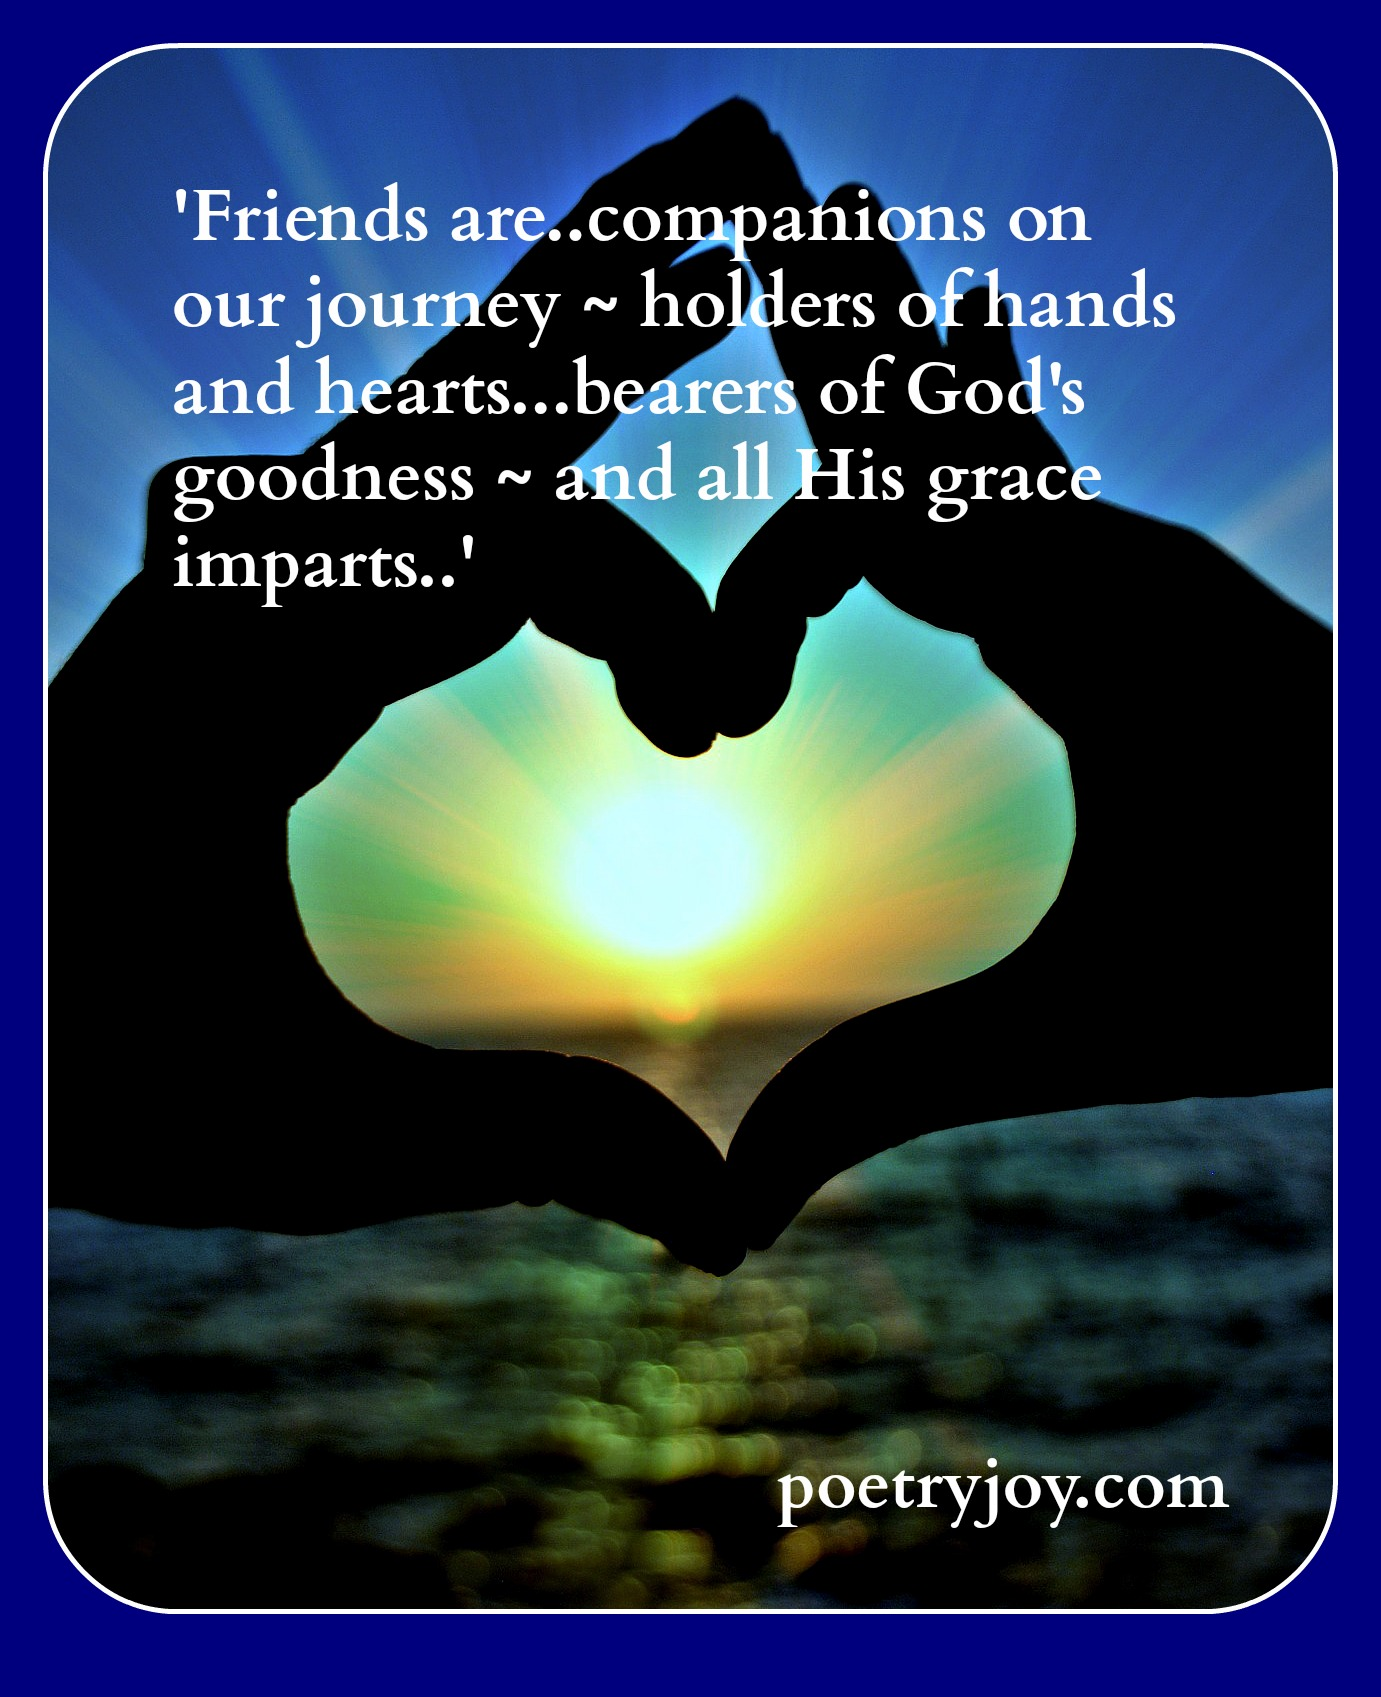 The gift of friendship poetry joy